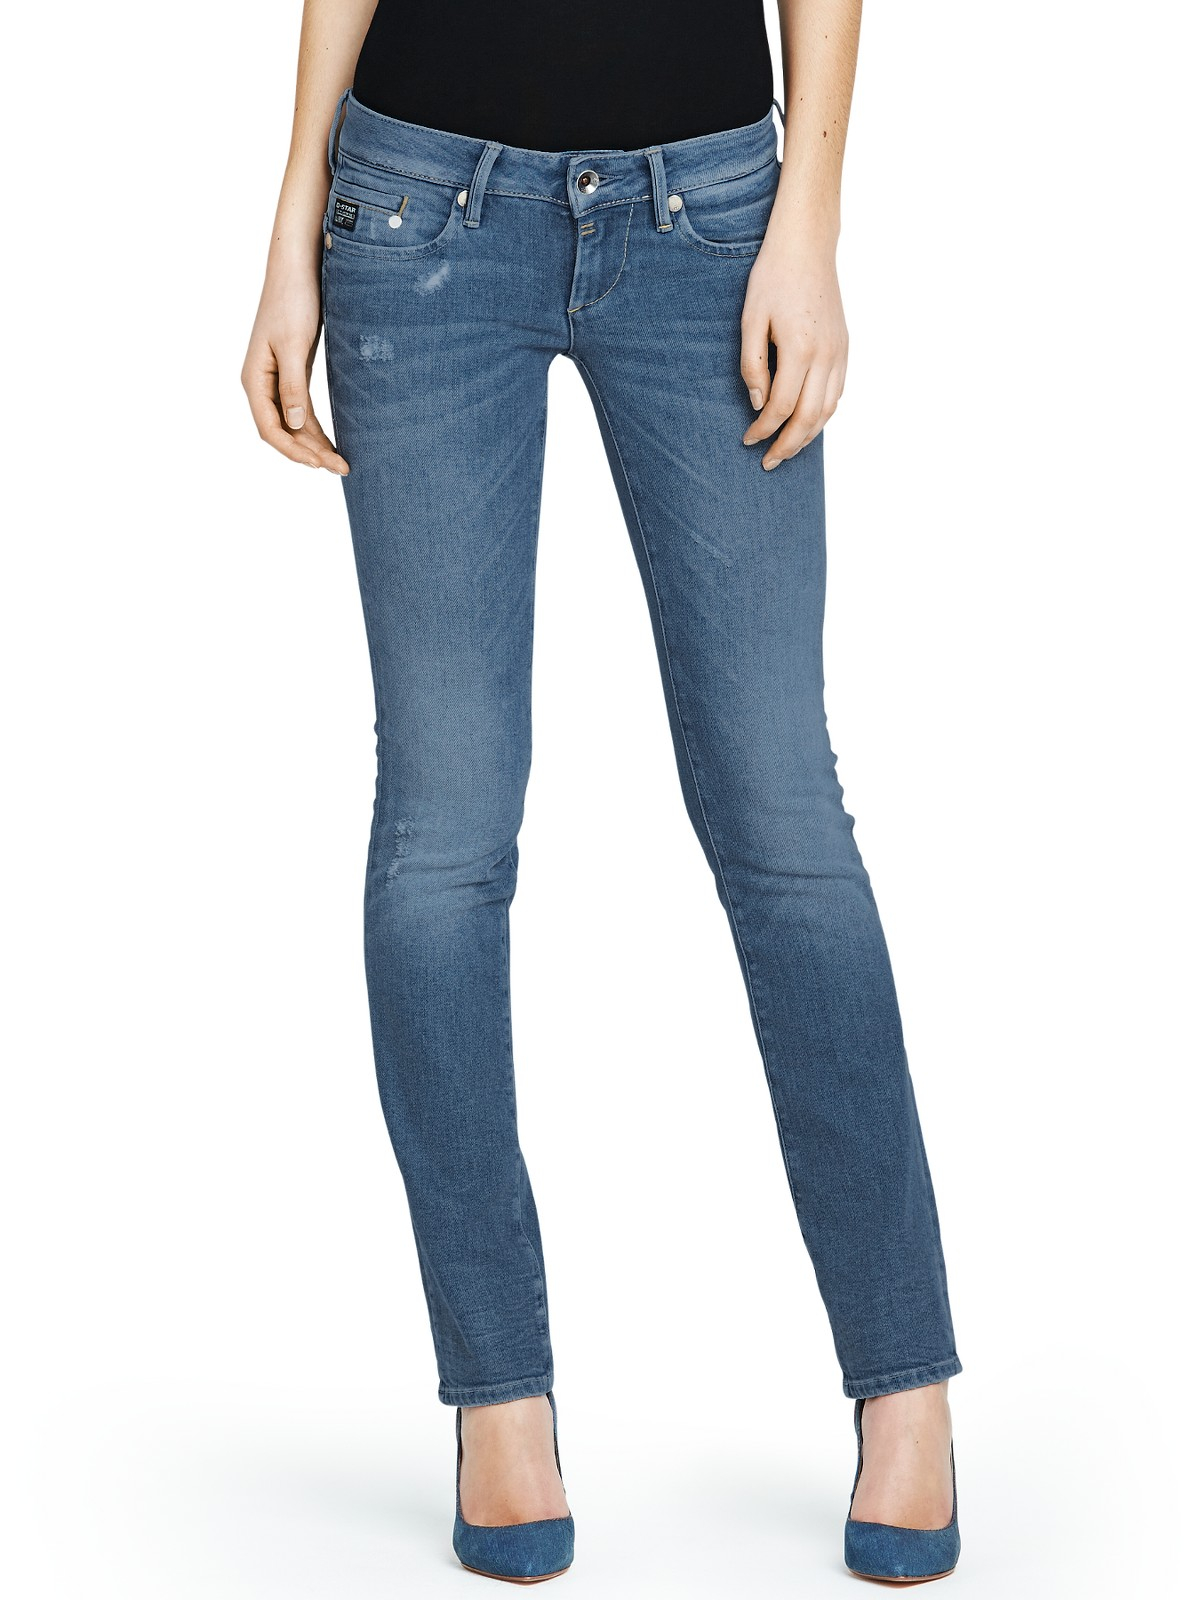 g star raw midge straight leg jeans in blue medium aged. Black Bedroom Furniture Sets. Home Design Ideas